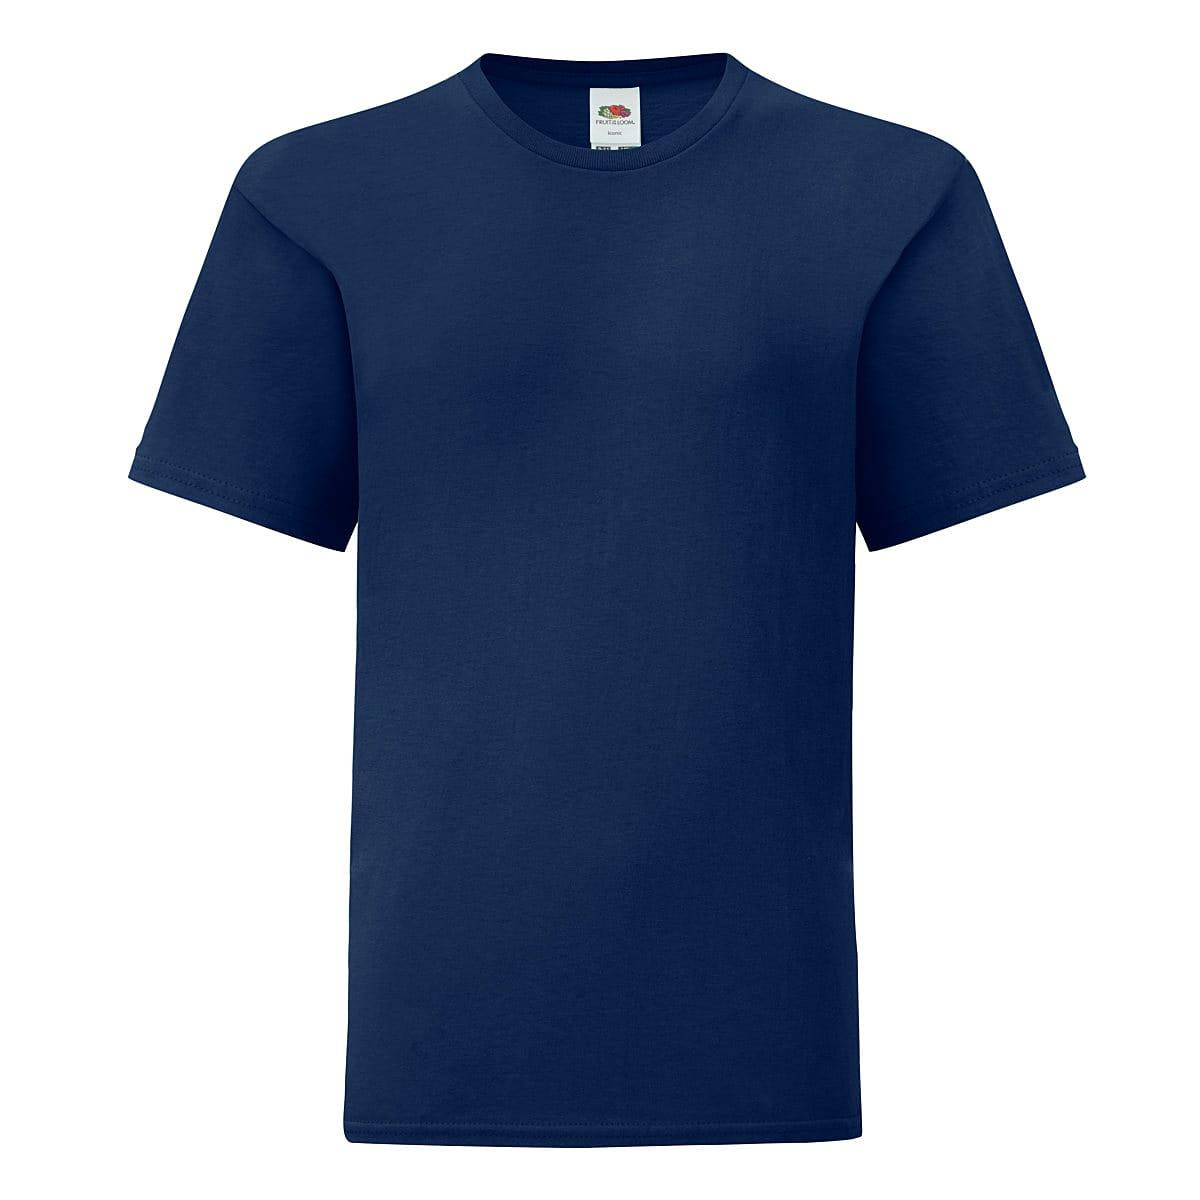 Fruit Of The Loom Kids Iconic T-Shirt in Navy Blue (Product Code: 61023)